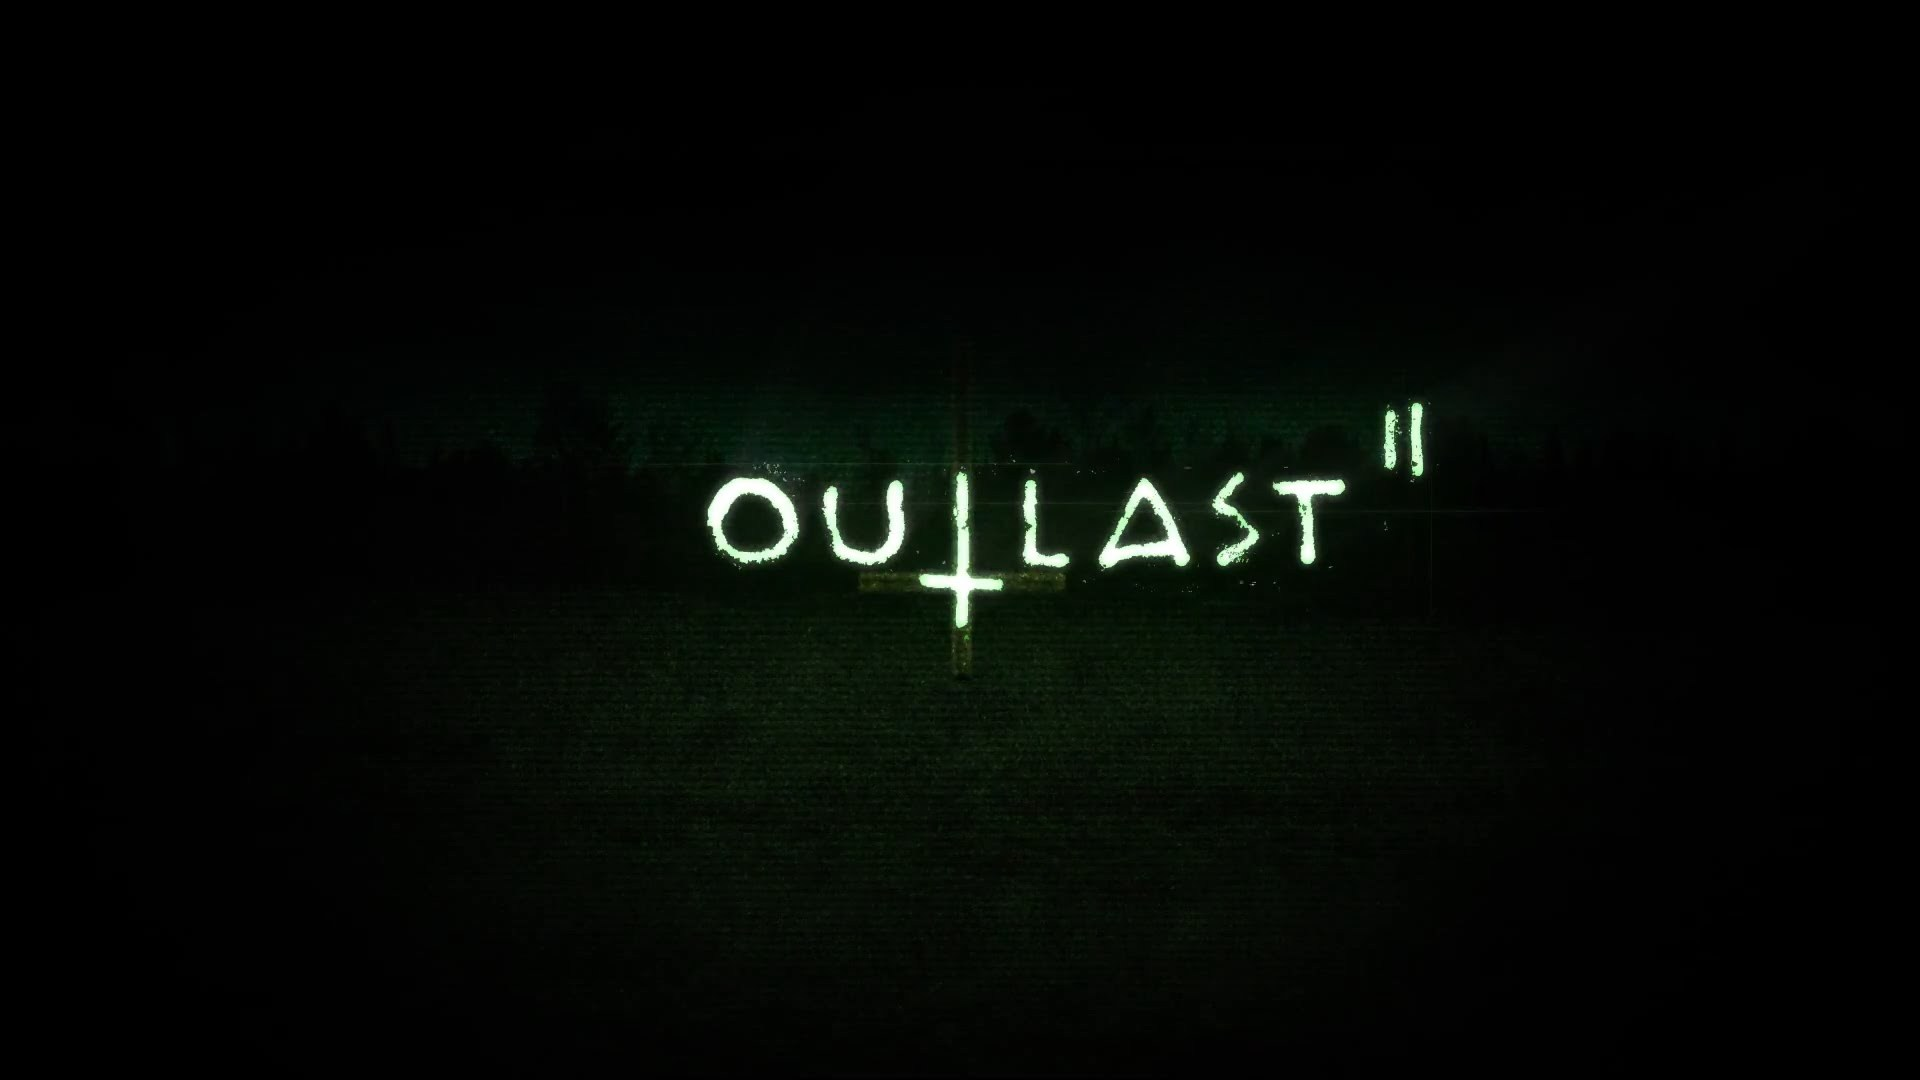 1920x1080 - Outlast HD Wallpapers 22